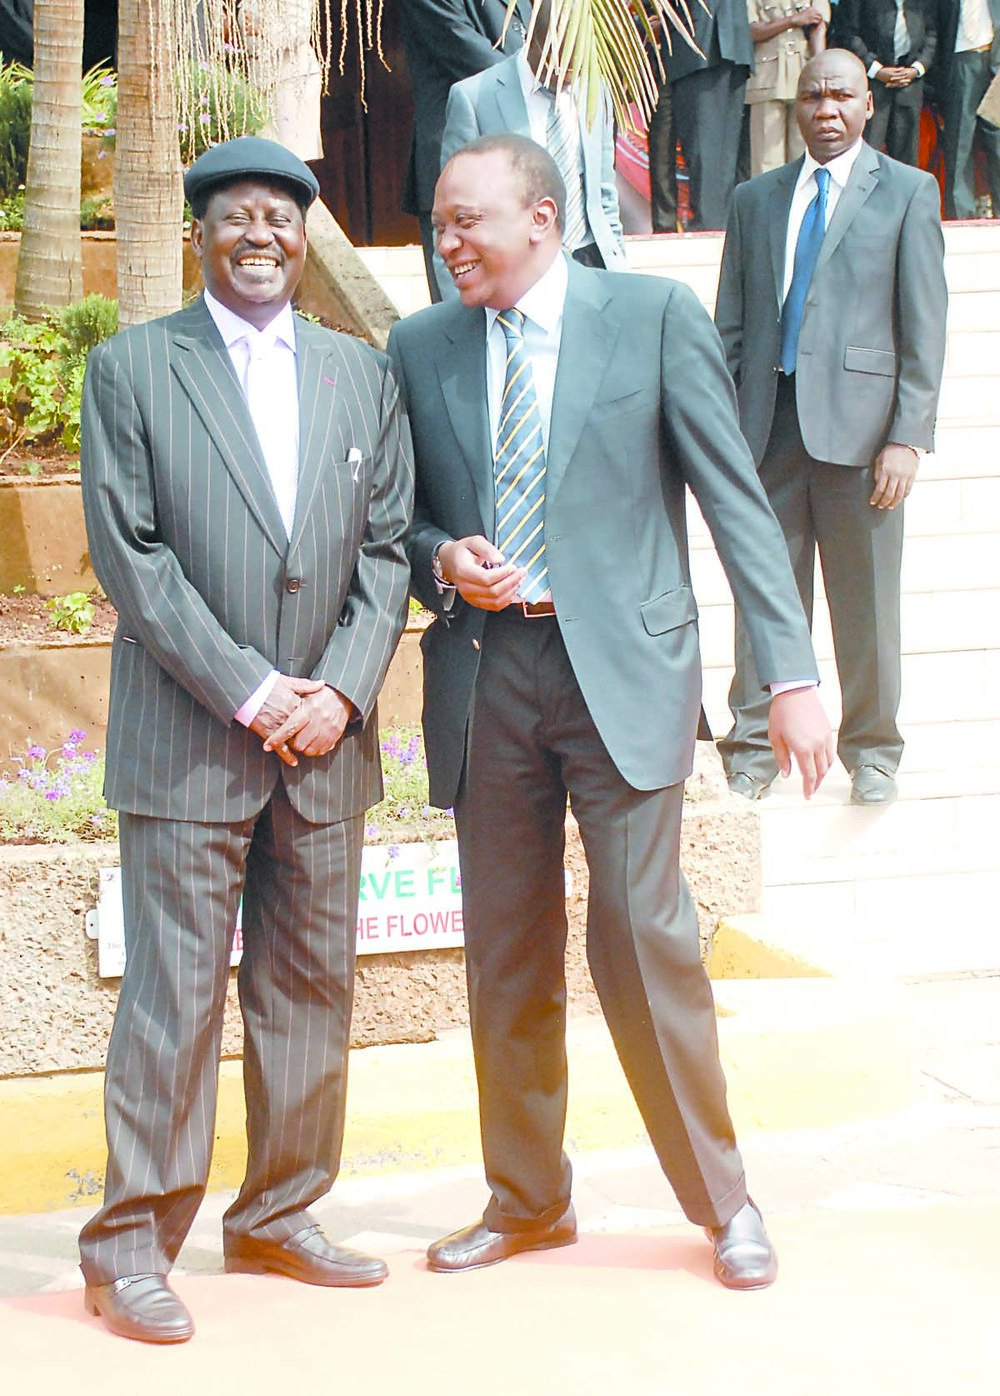 President Kenyatta (r) shares a light moment with opposition chief Raila Odinga (r). Despite their public spats, the two are long time family friends who visit and talk to each other on a regular basis, as confirmed by Odinga in a recent TV interview